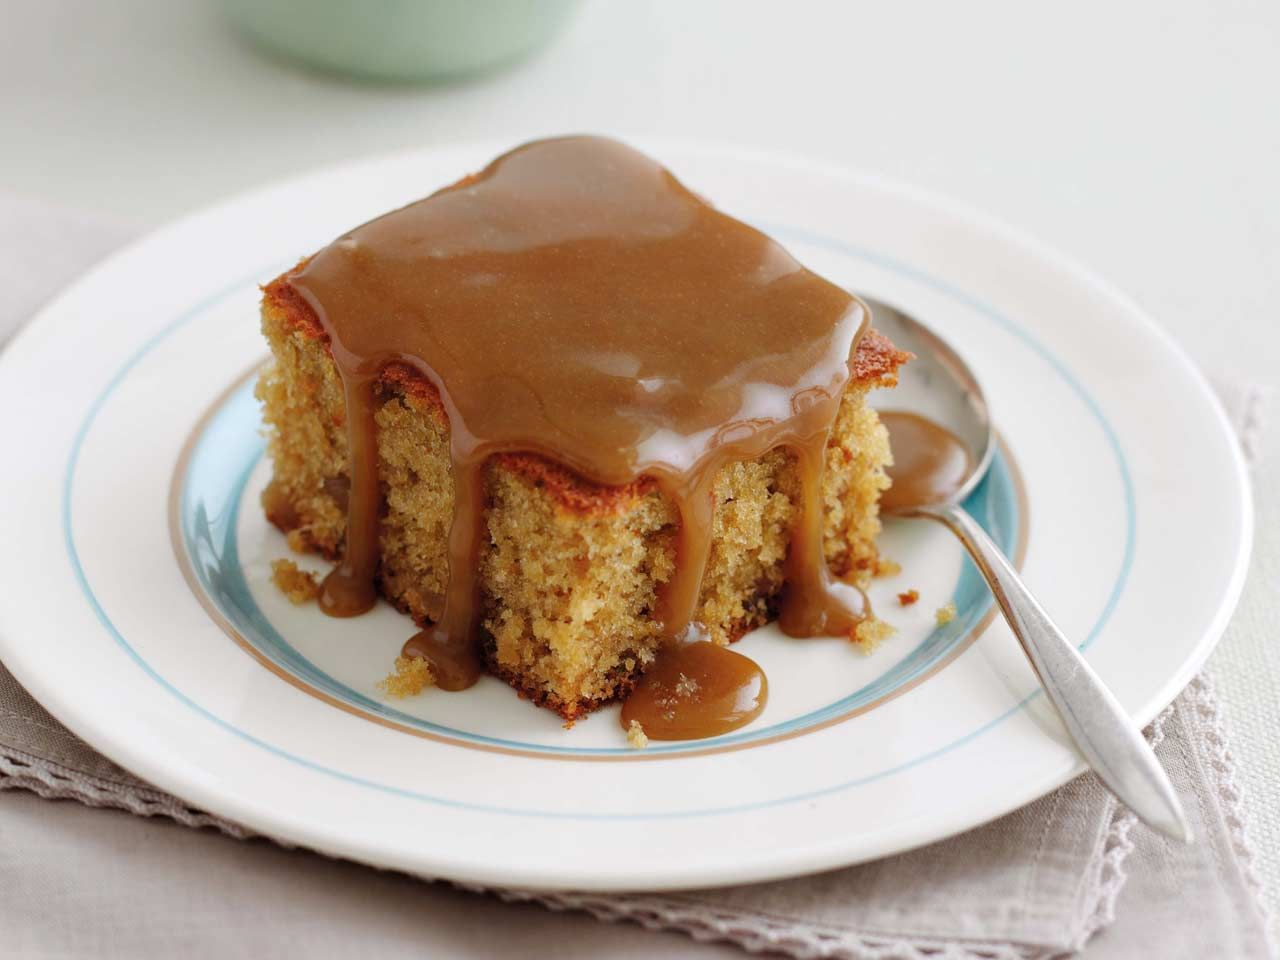 Mary berrys recipe for a traditional english sticky toffee pudding mary berrys recipe for a traditional english sticky toffee pudding with a hot toffee sauce is as easy as it is delicious fandeluxe Images